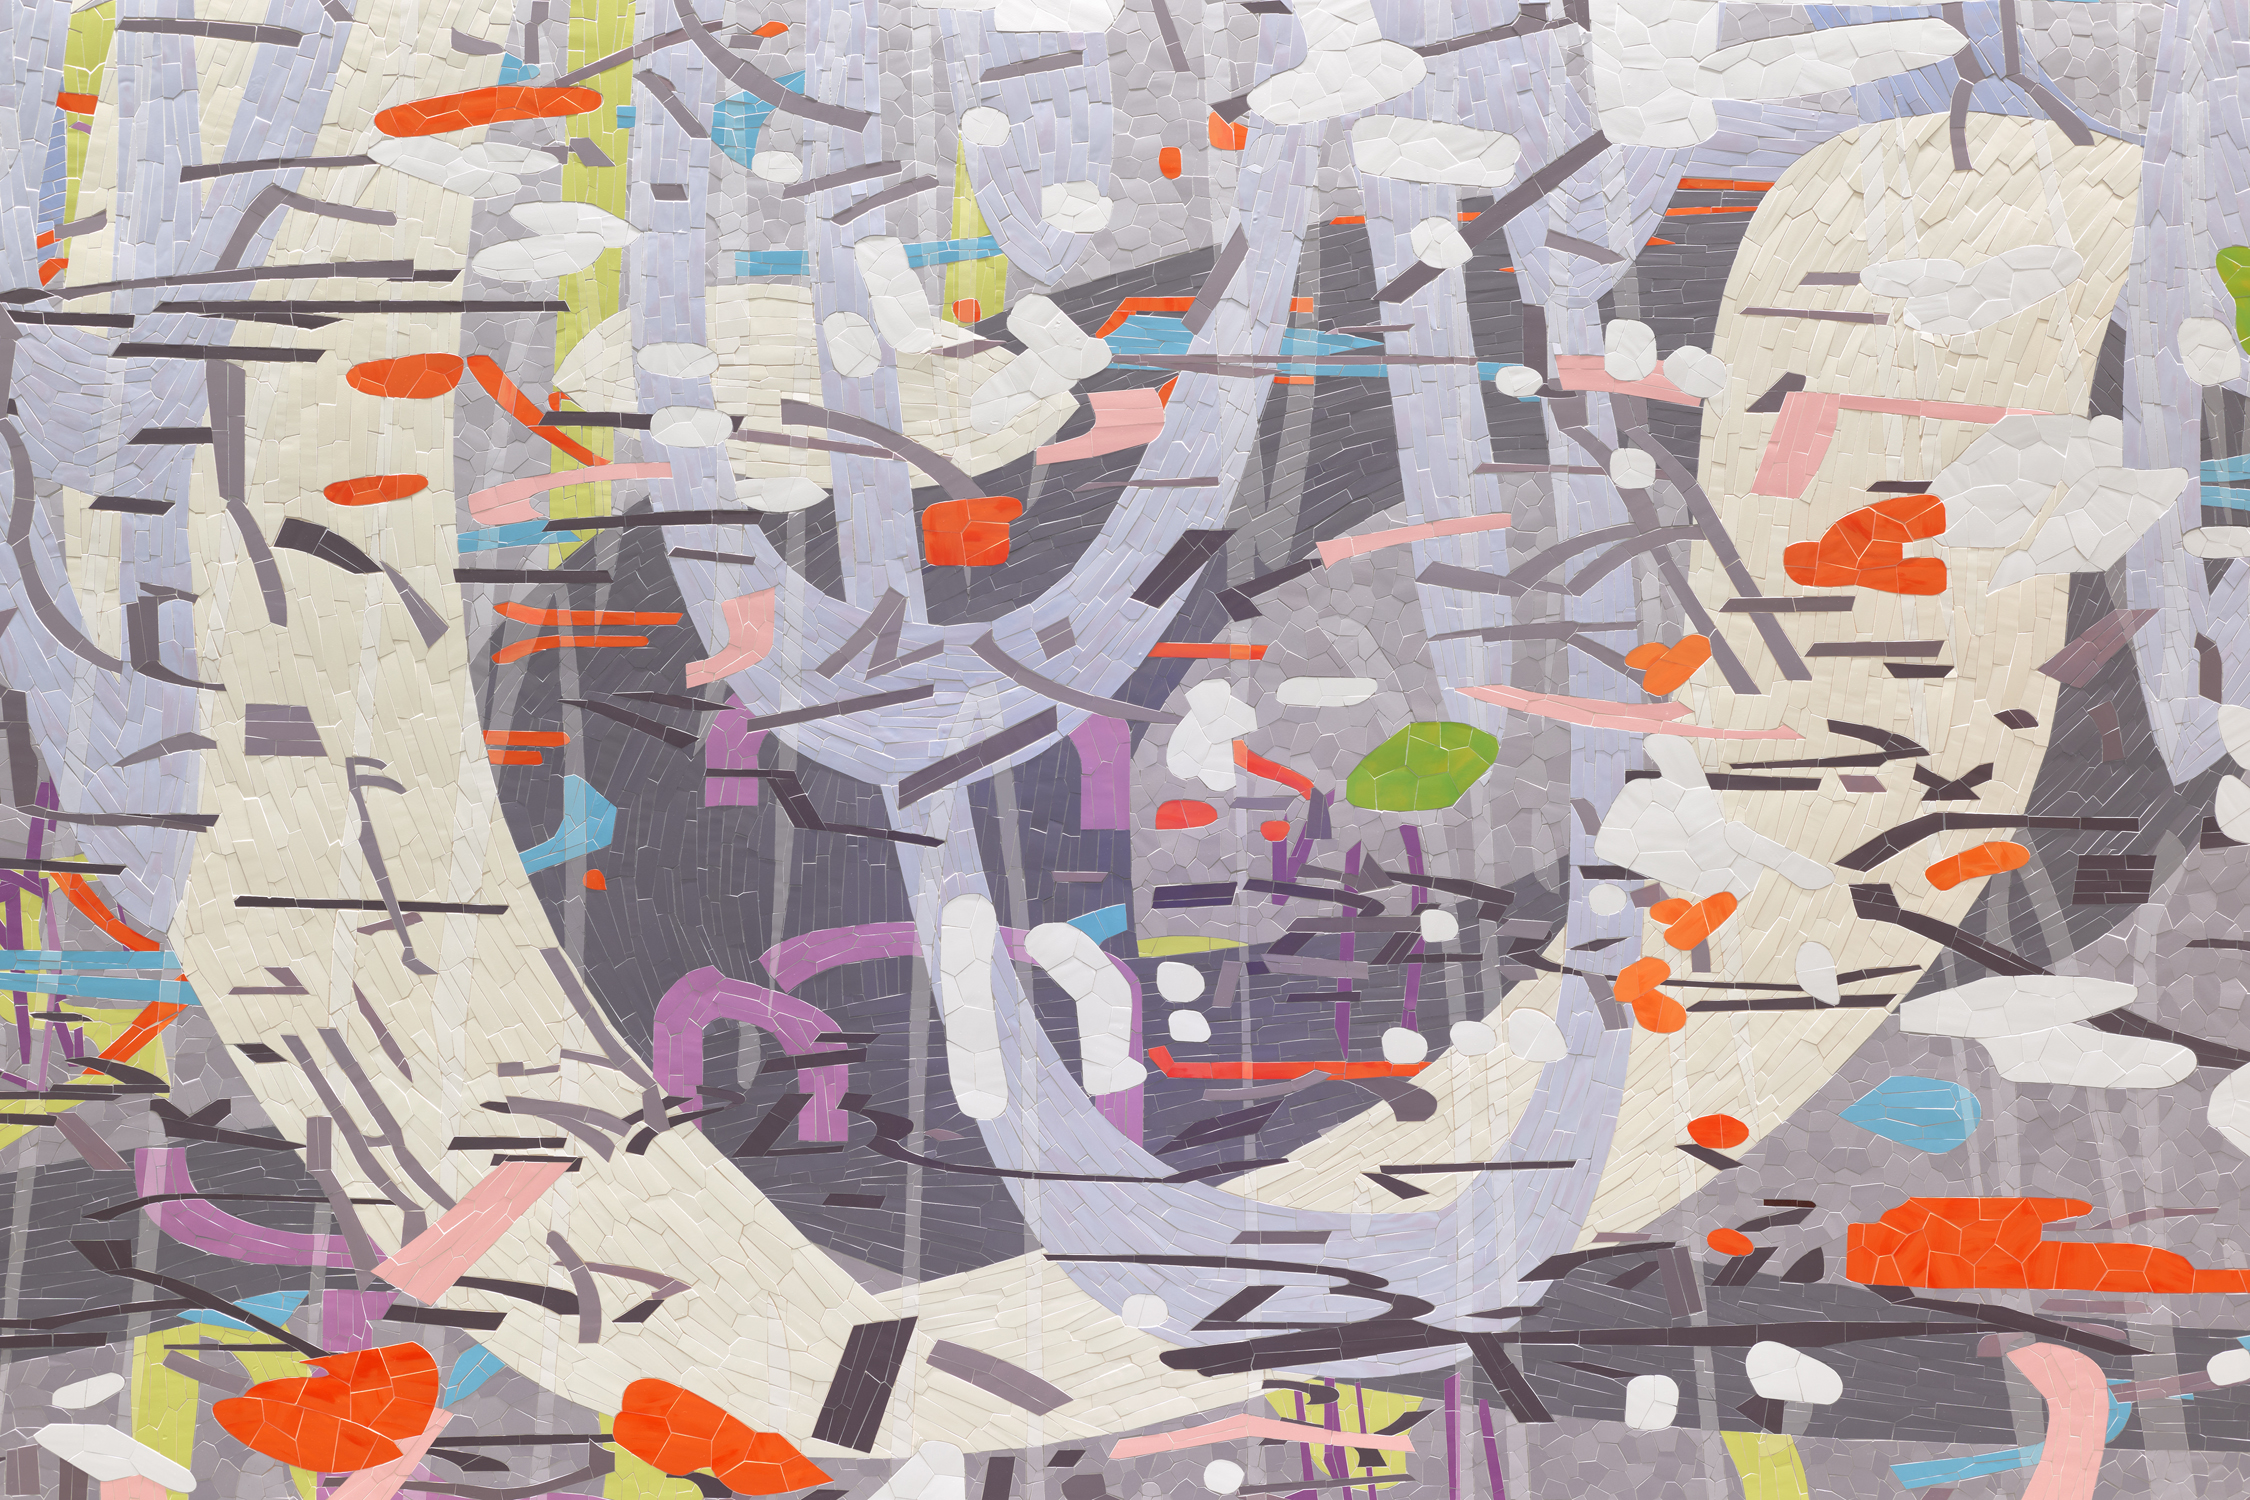 [detail]  Untitled (Large Variation),  2015 Ceramic mosaic 10' x 109' San Francisco International Airport